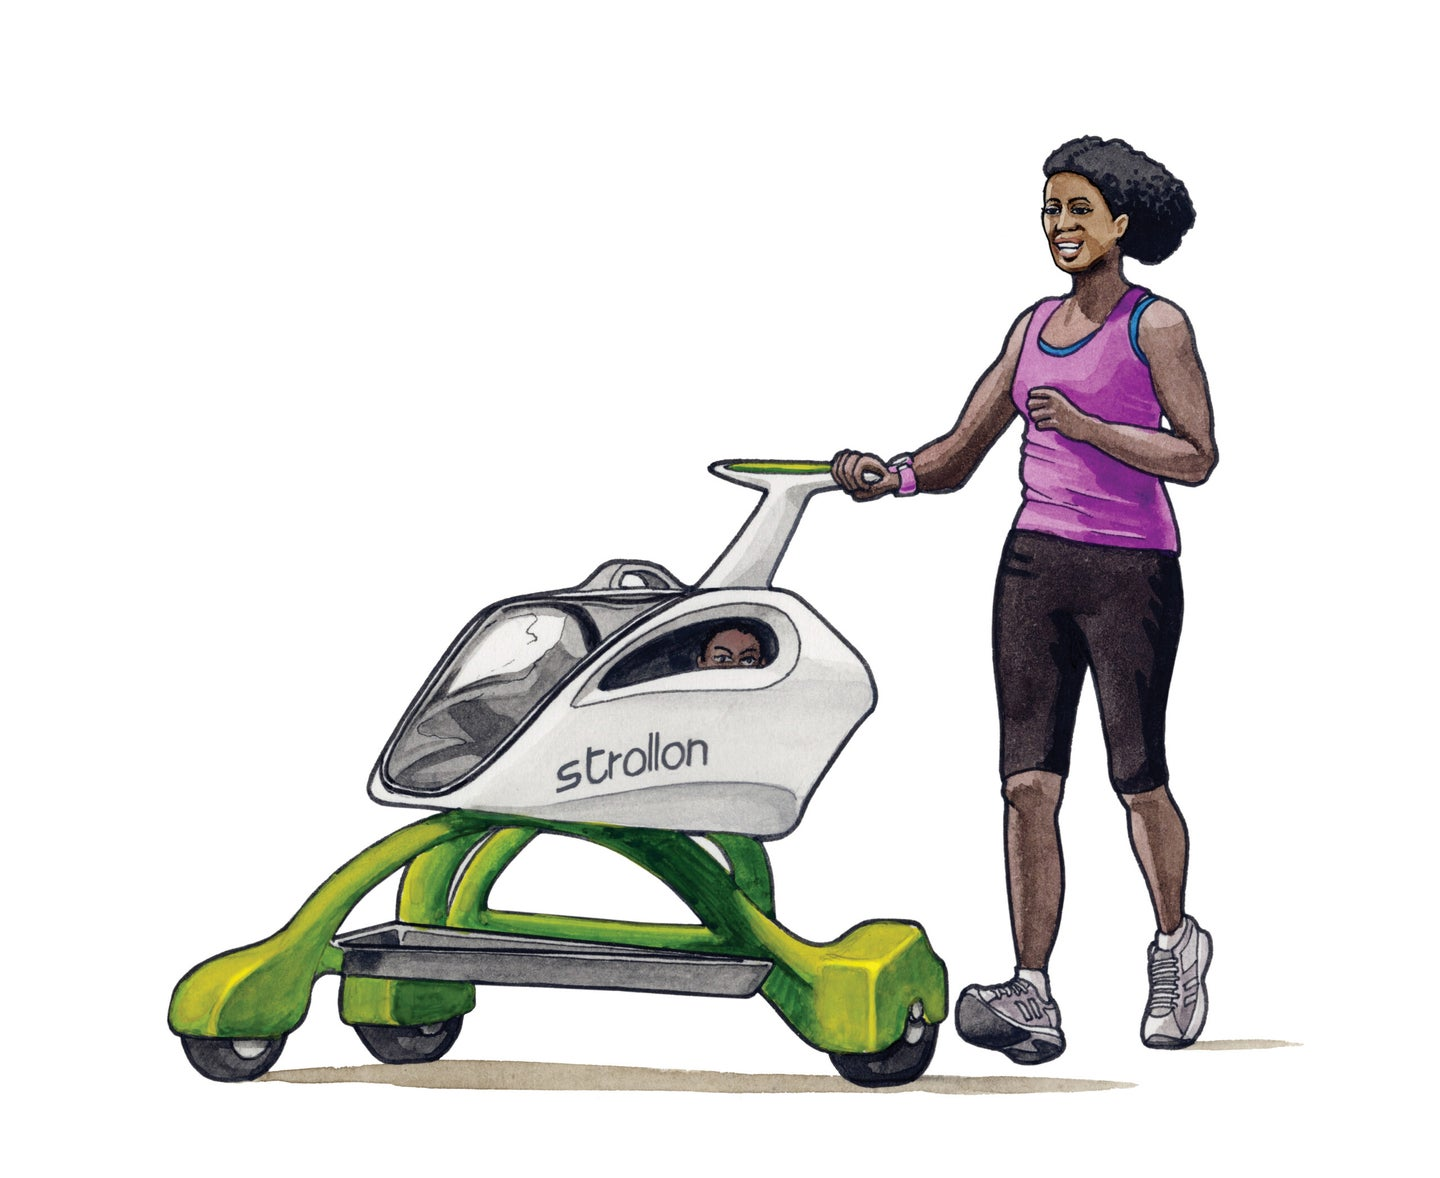 Parent in pink tank top pushing baby in a futuristic green and white stroller